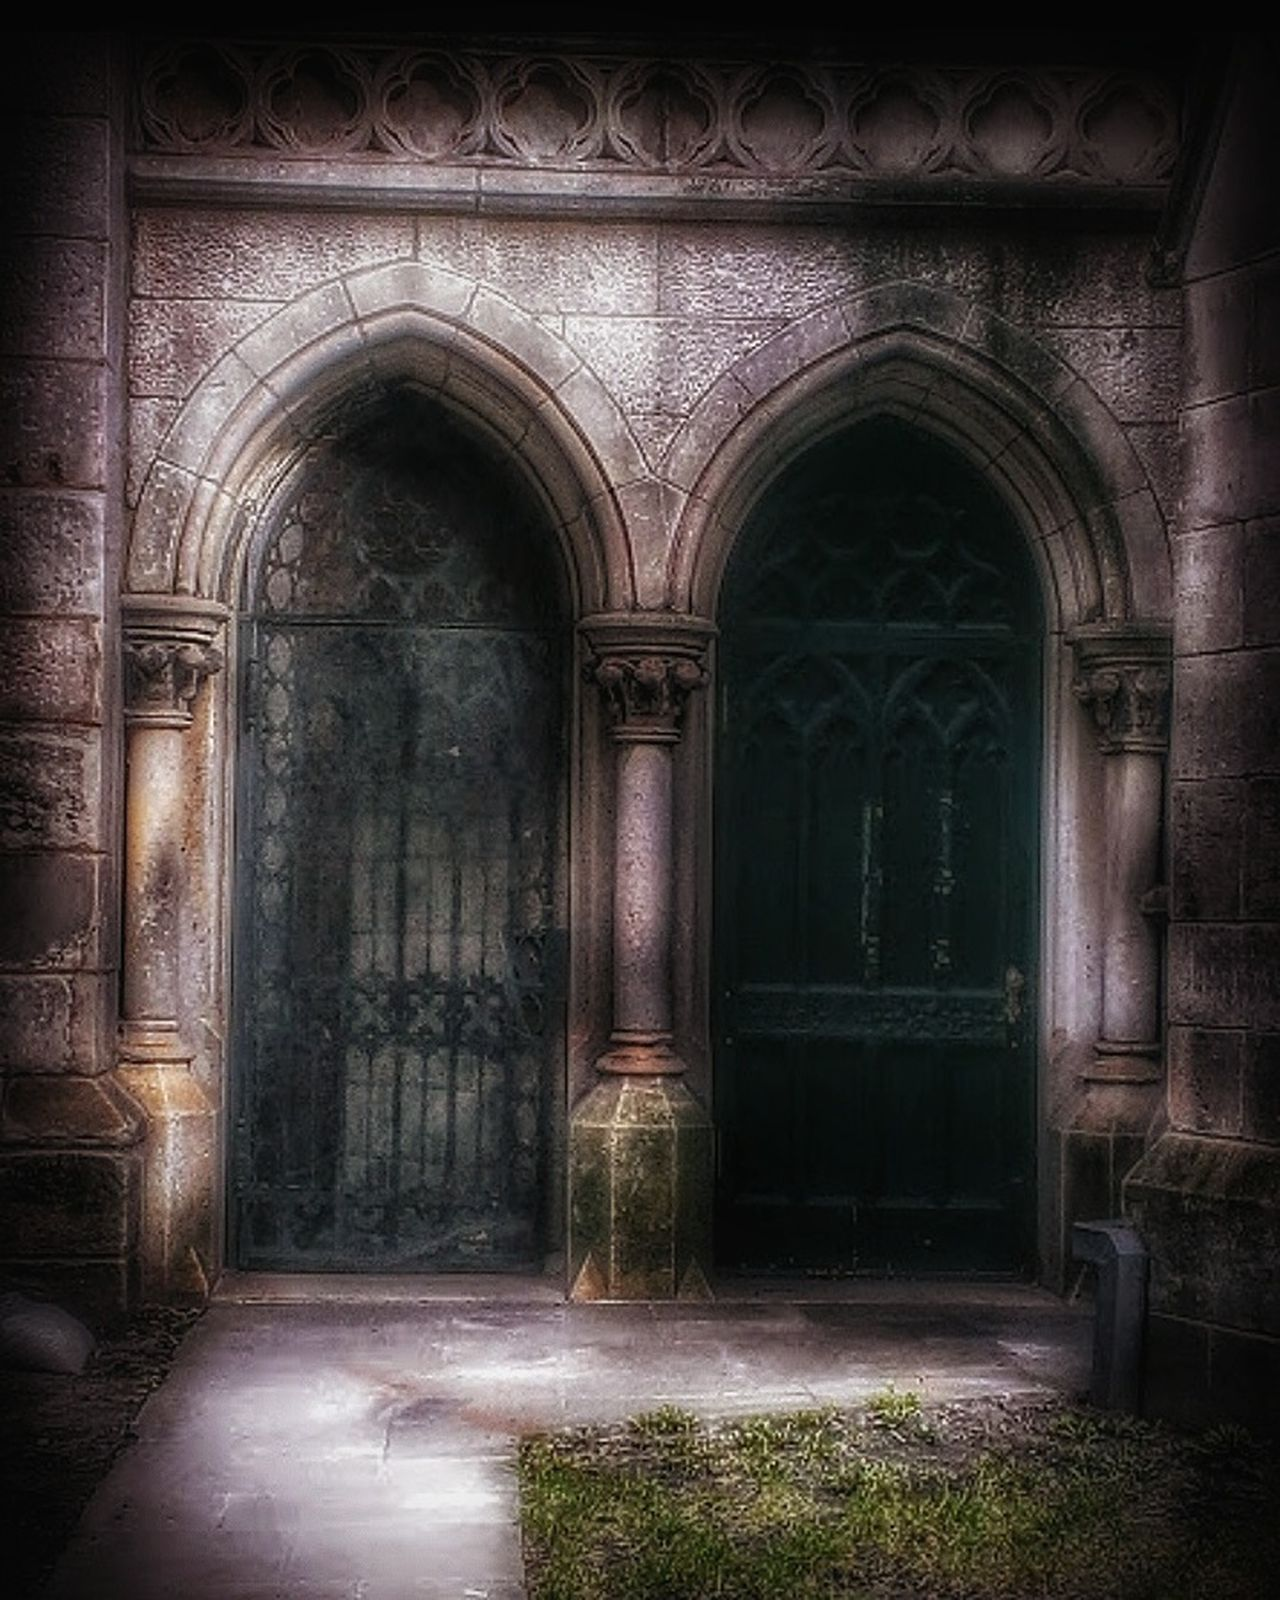 Knock-knock-knockin on Heaven's door... Abandoned Buildings Built Structure Churches Doorsandwindows Doorsonly Urban Lifestyle Creepy Atmoshpere EyeEm Gallery Building Exterior Tresspassing For Art AMPt - Abandon AMPt - Street Decaying Damaged Textured  Urban Deterioration Doors Church Architecture Architecture